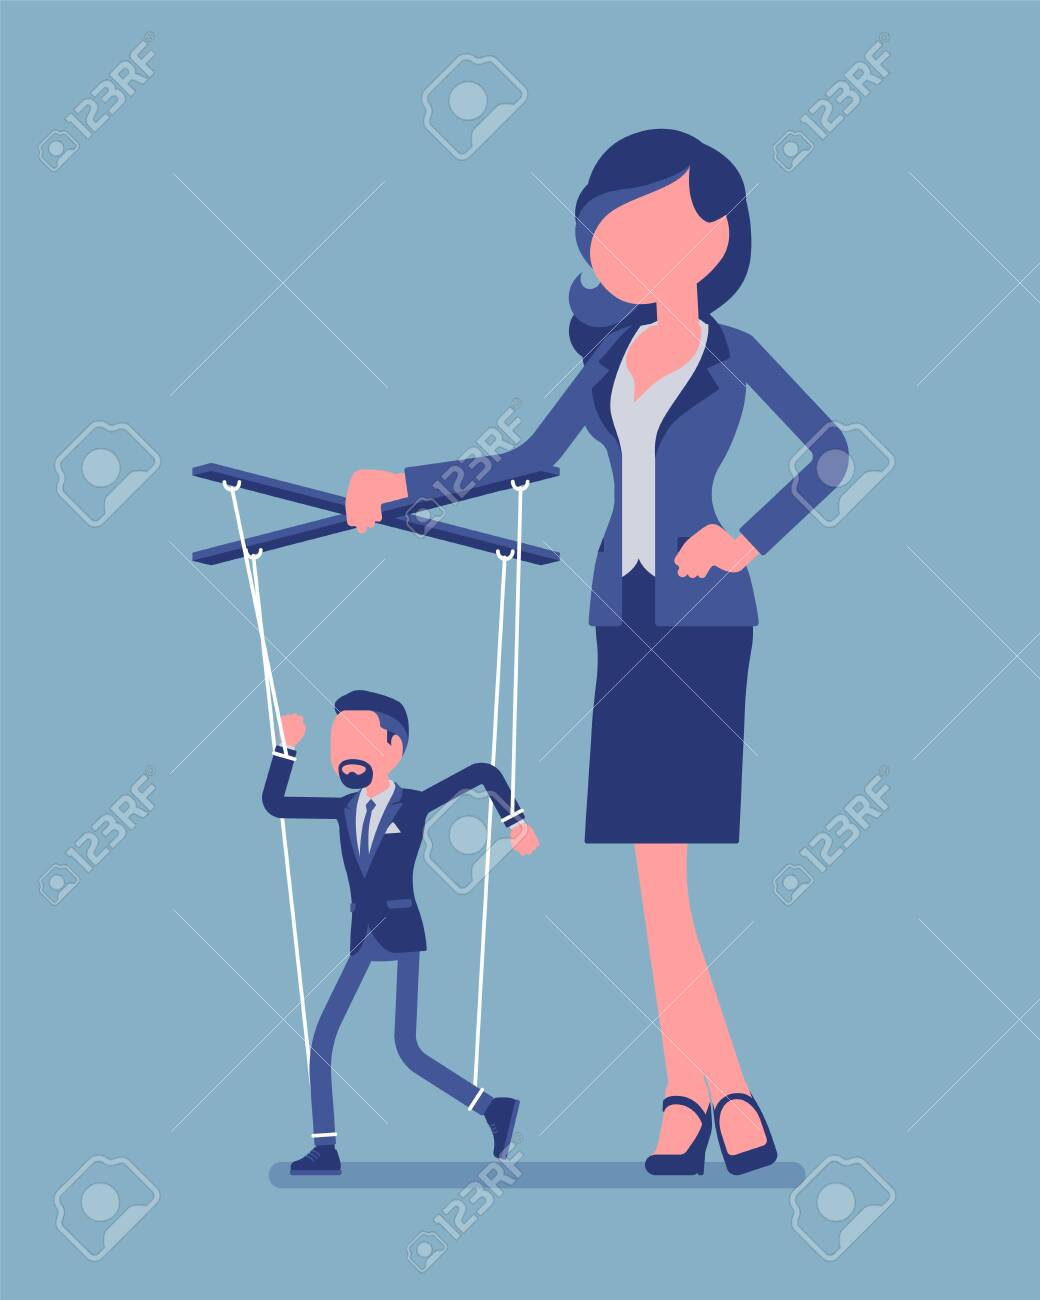 Marionette businessman manipulated and controlled by female puppeteer